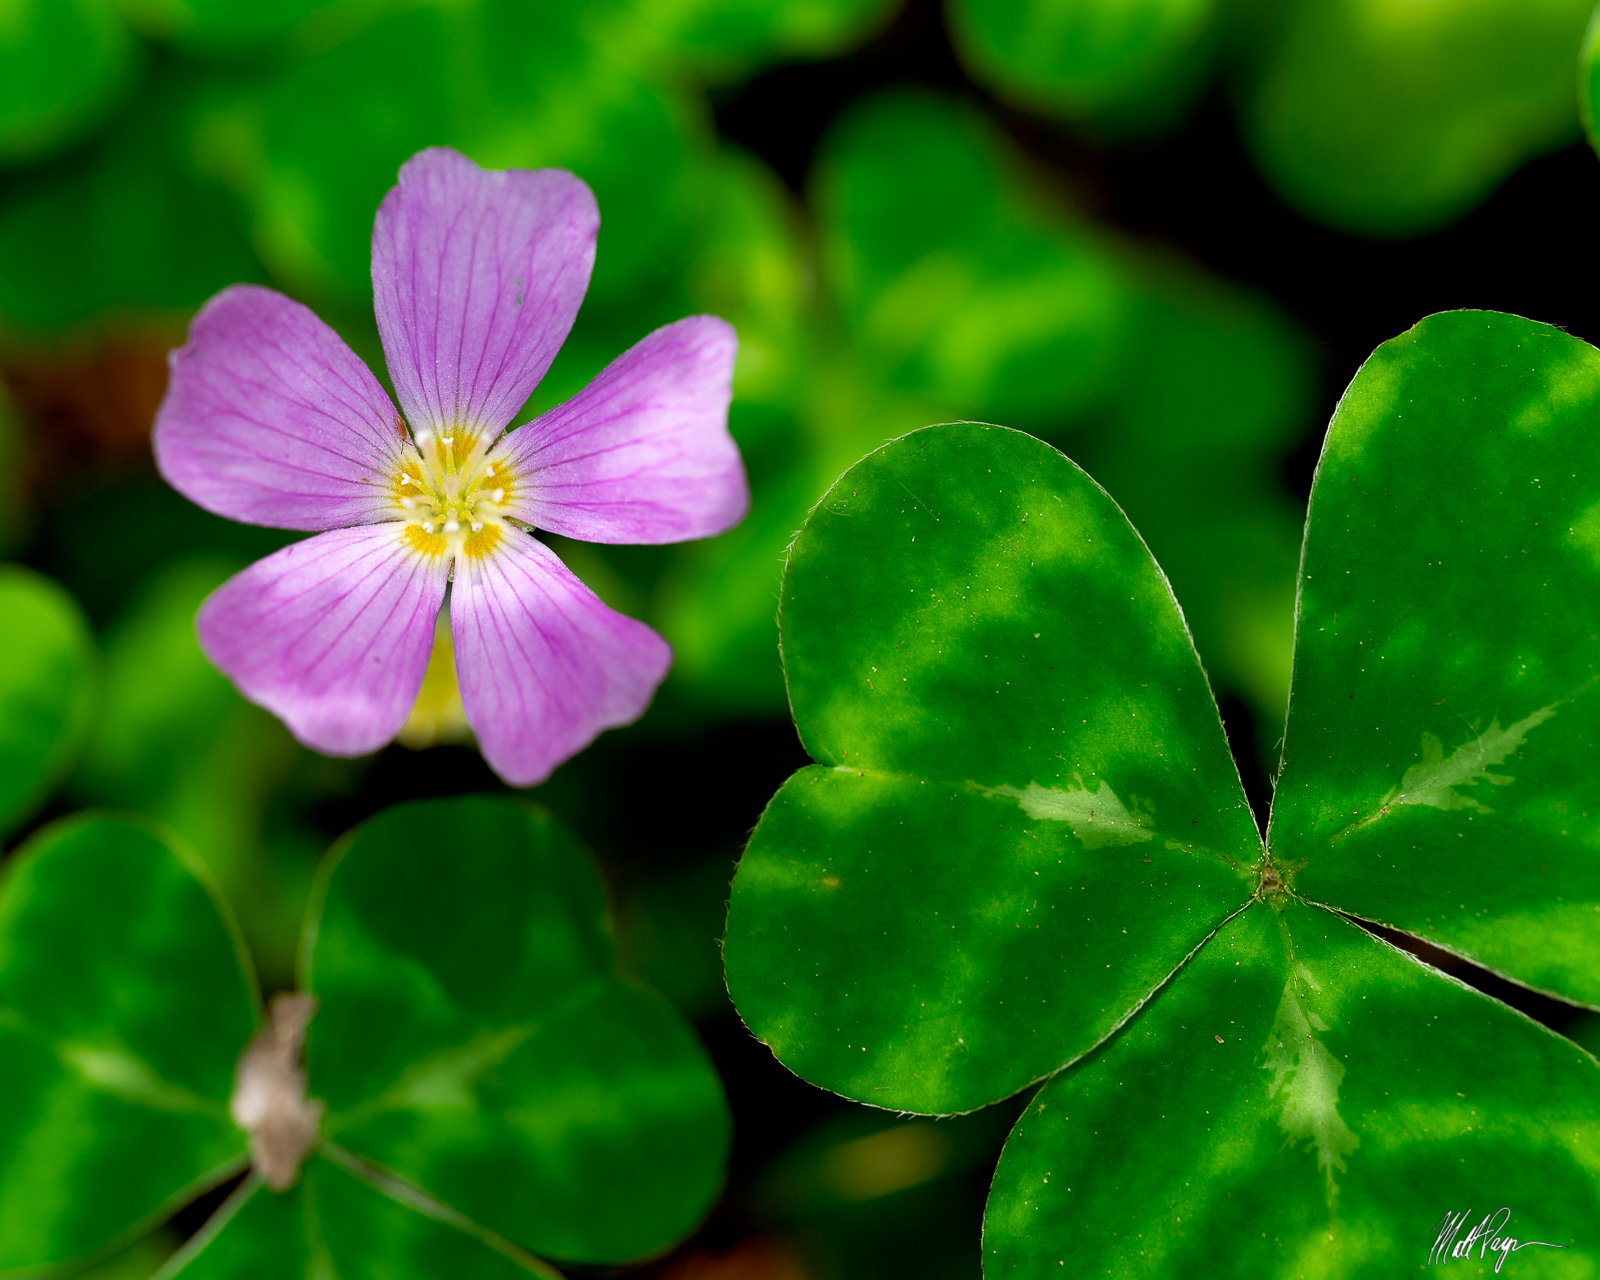 Pink Oxalis or Wood Sorrel is one of the most awesome plants to see and photograph in the California Redwoods. When the sun is...